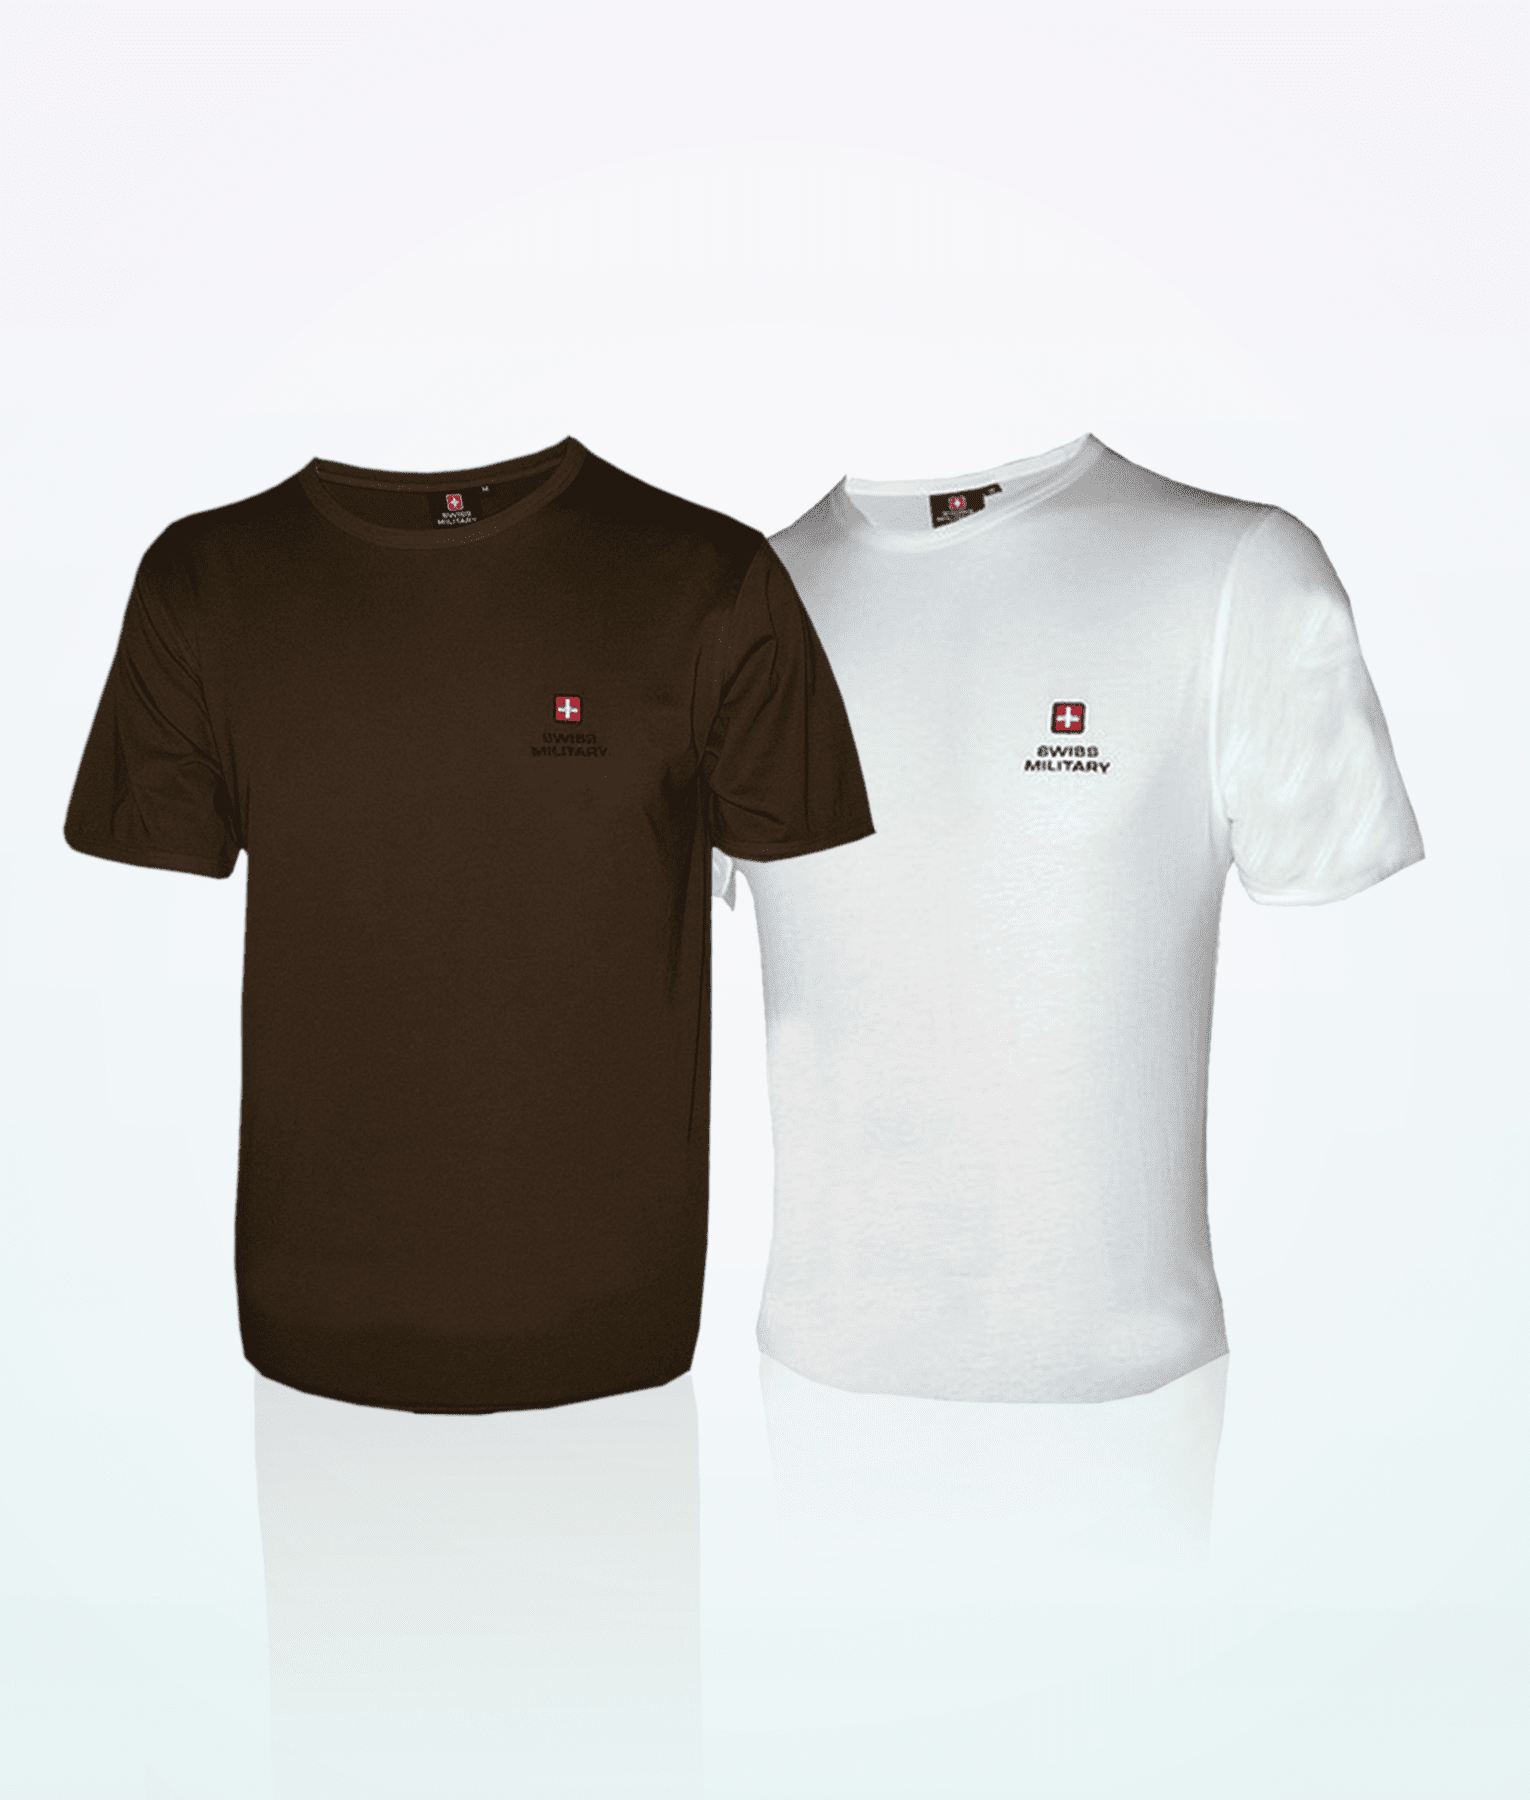 Swiss Military T-shirt Embroidery • Swiss Made Direct 88252f73c83